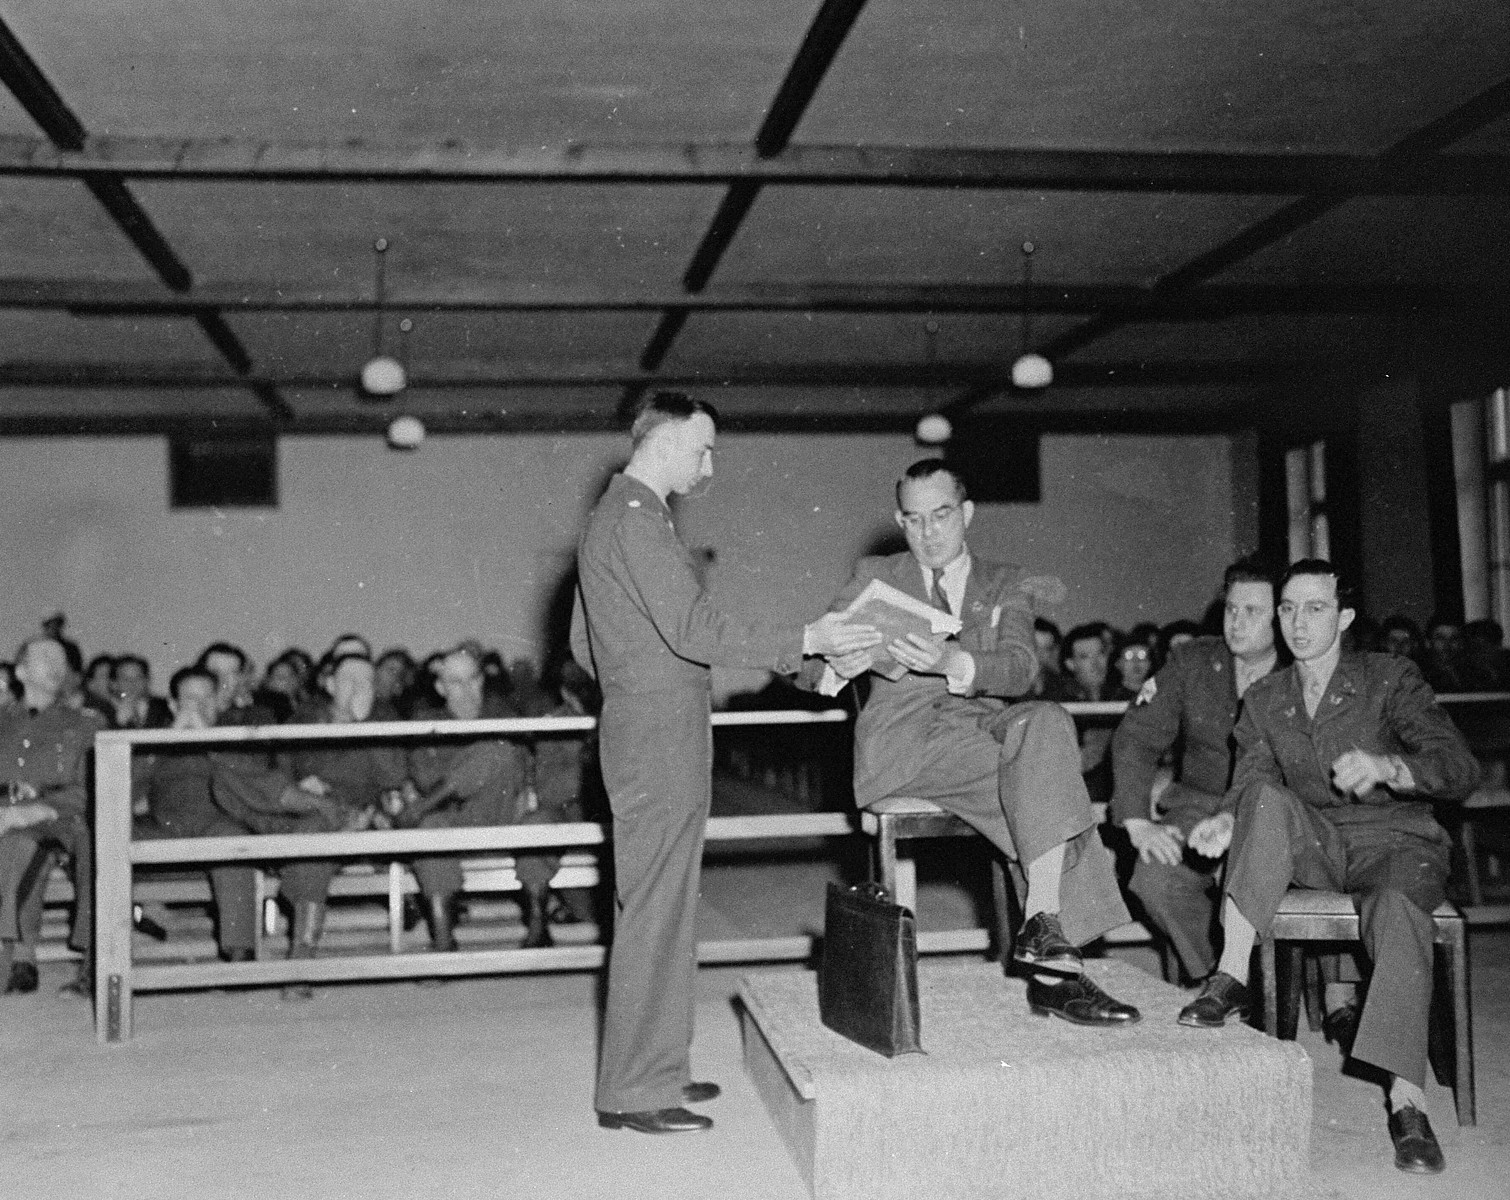 A witness testifies at the trial of 61 former camp personnel and prisoners from Mauthausen.    Pictured on the left is U.S. prosecutor William Denson.